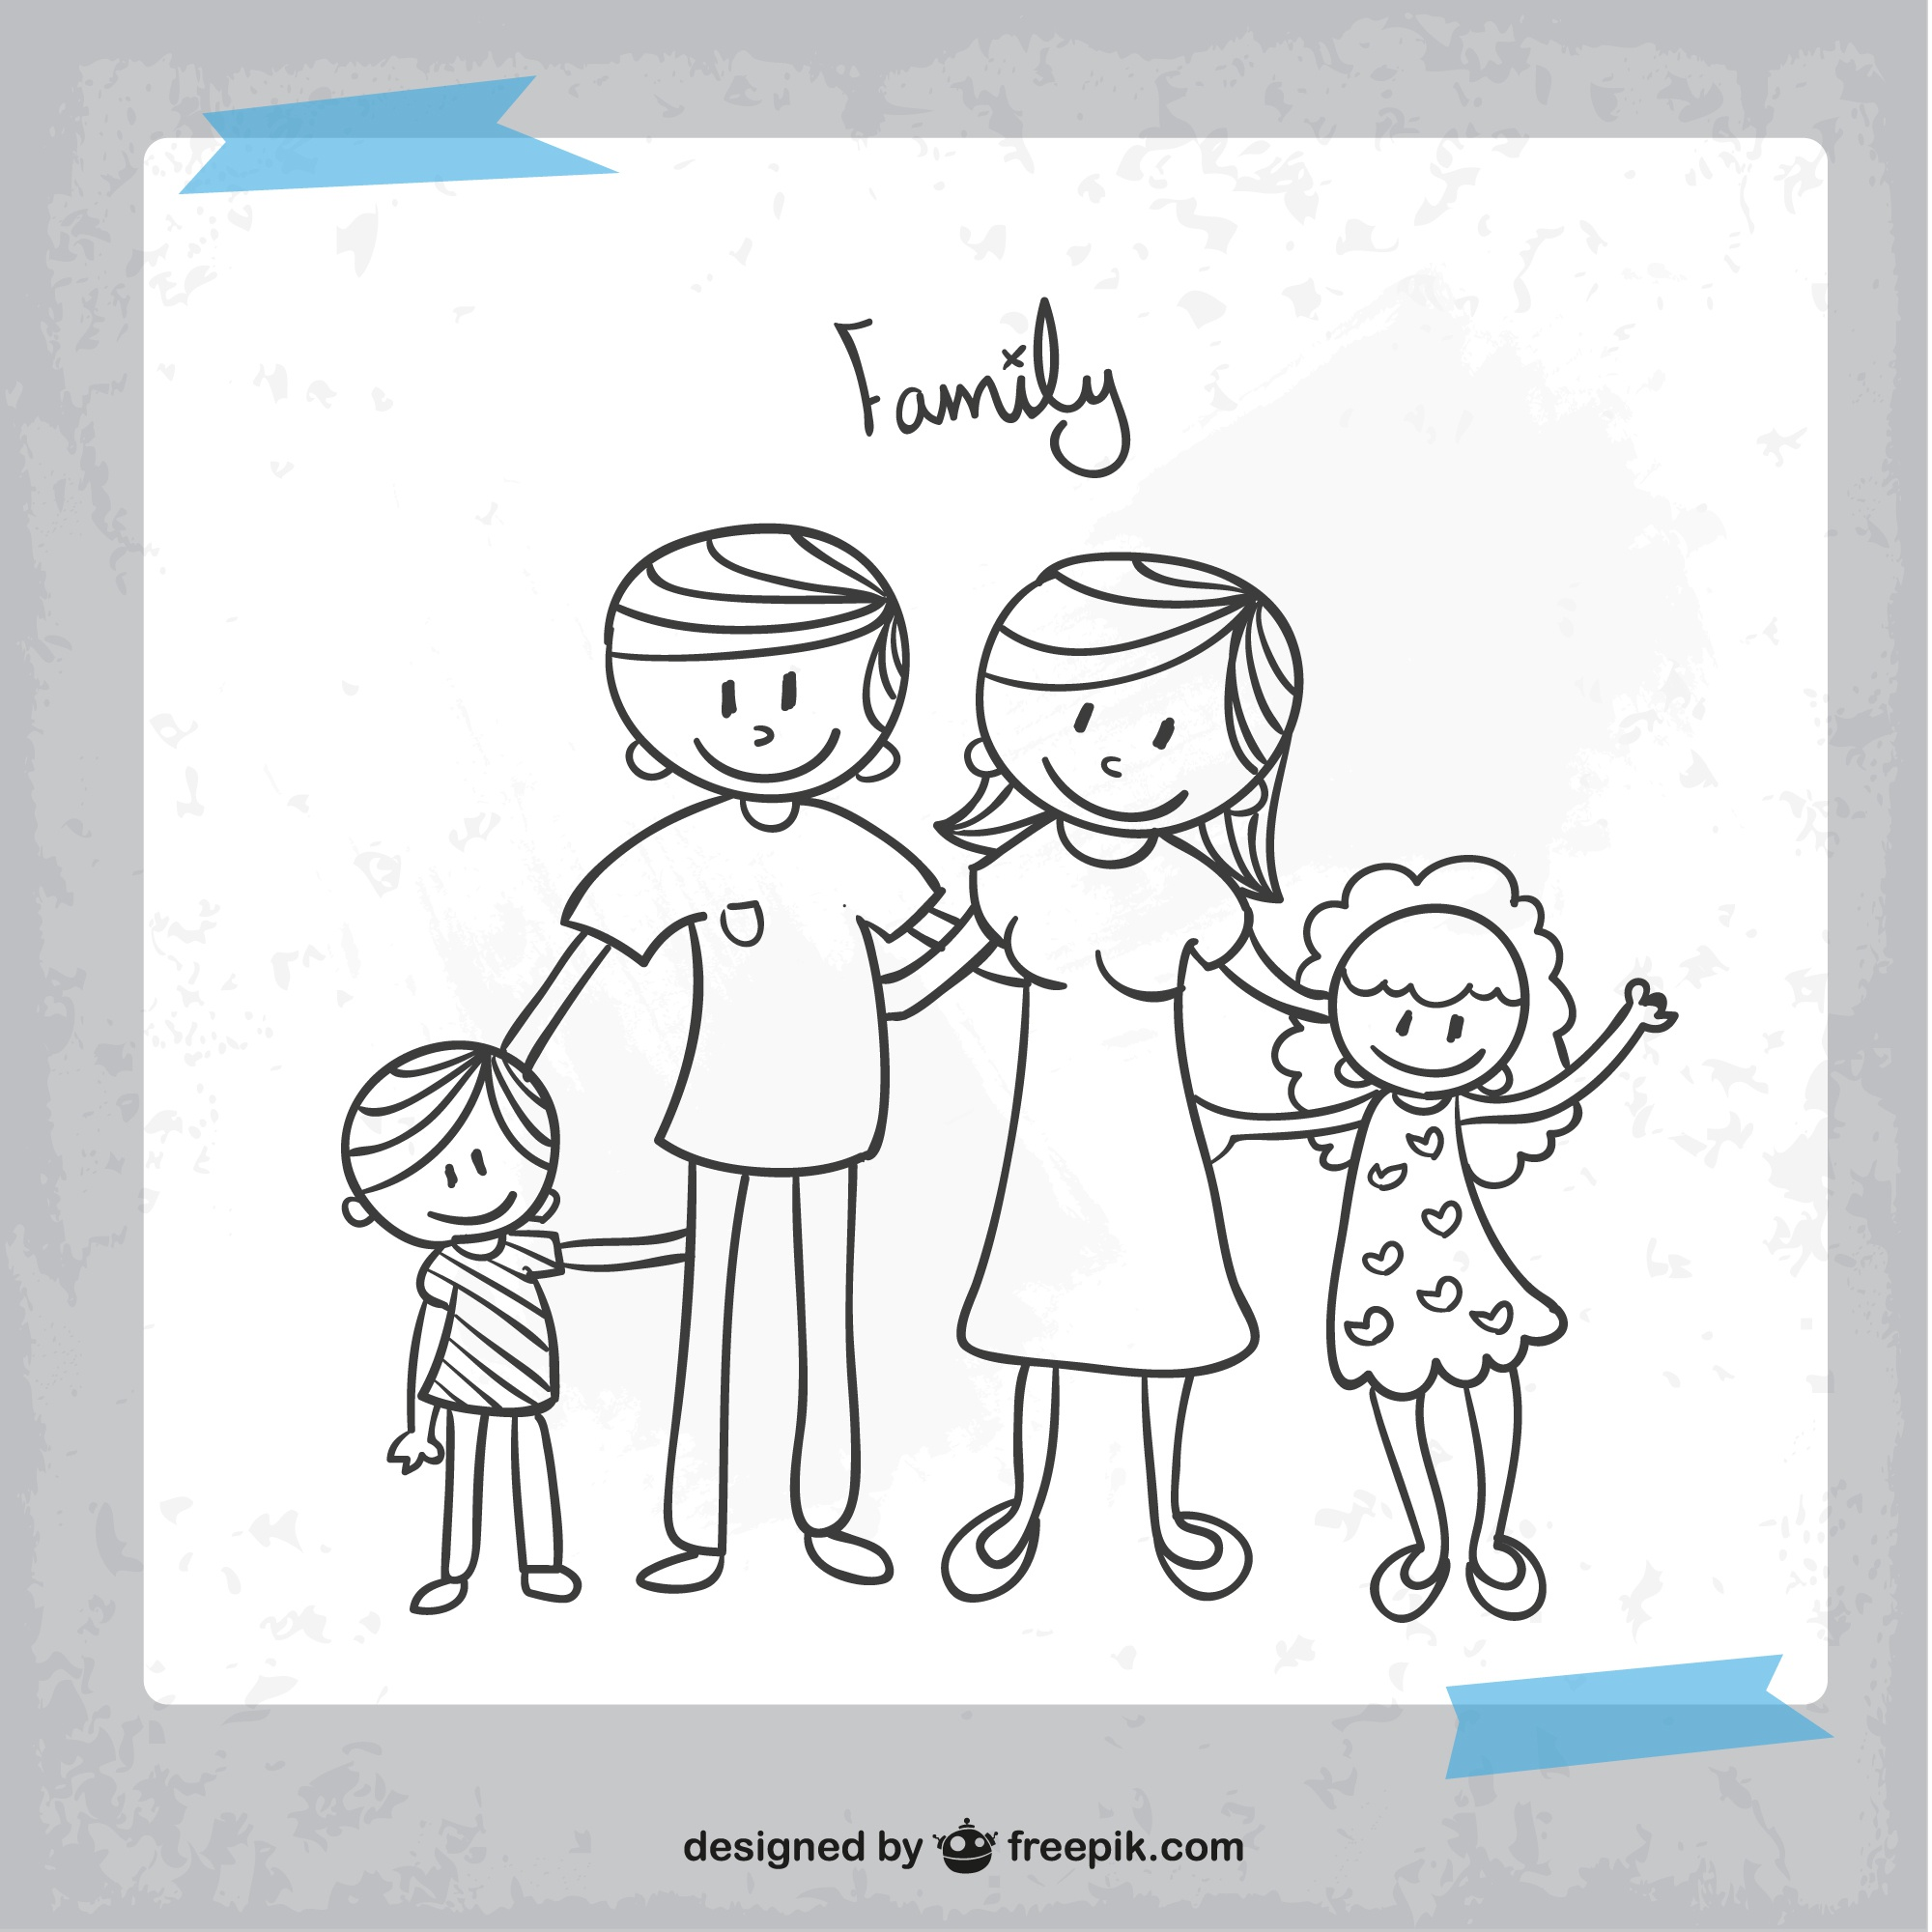 Family doodle style vector